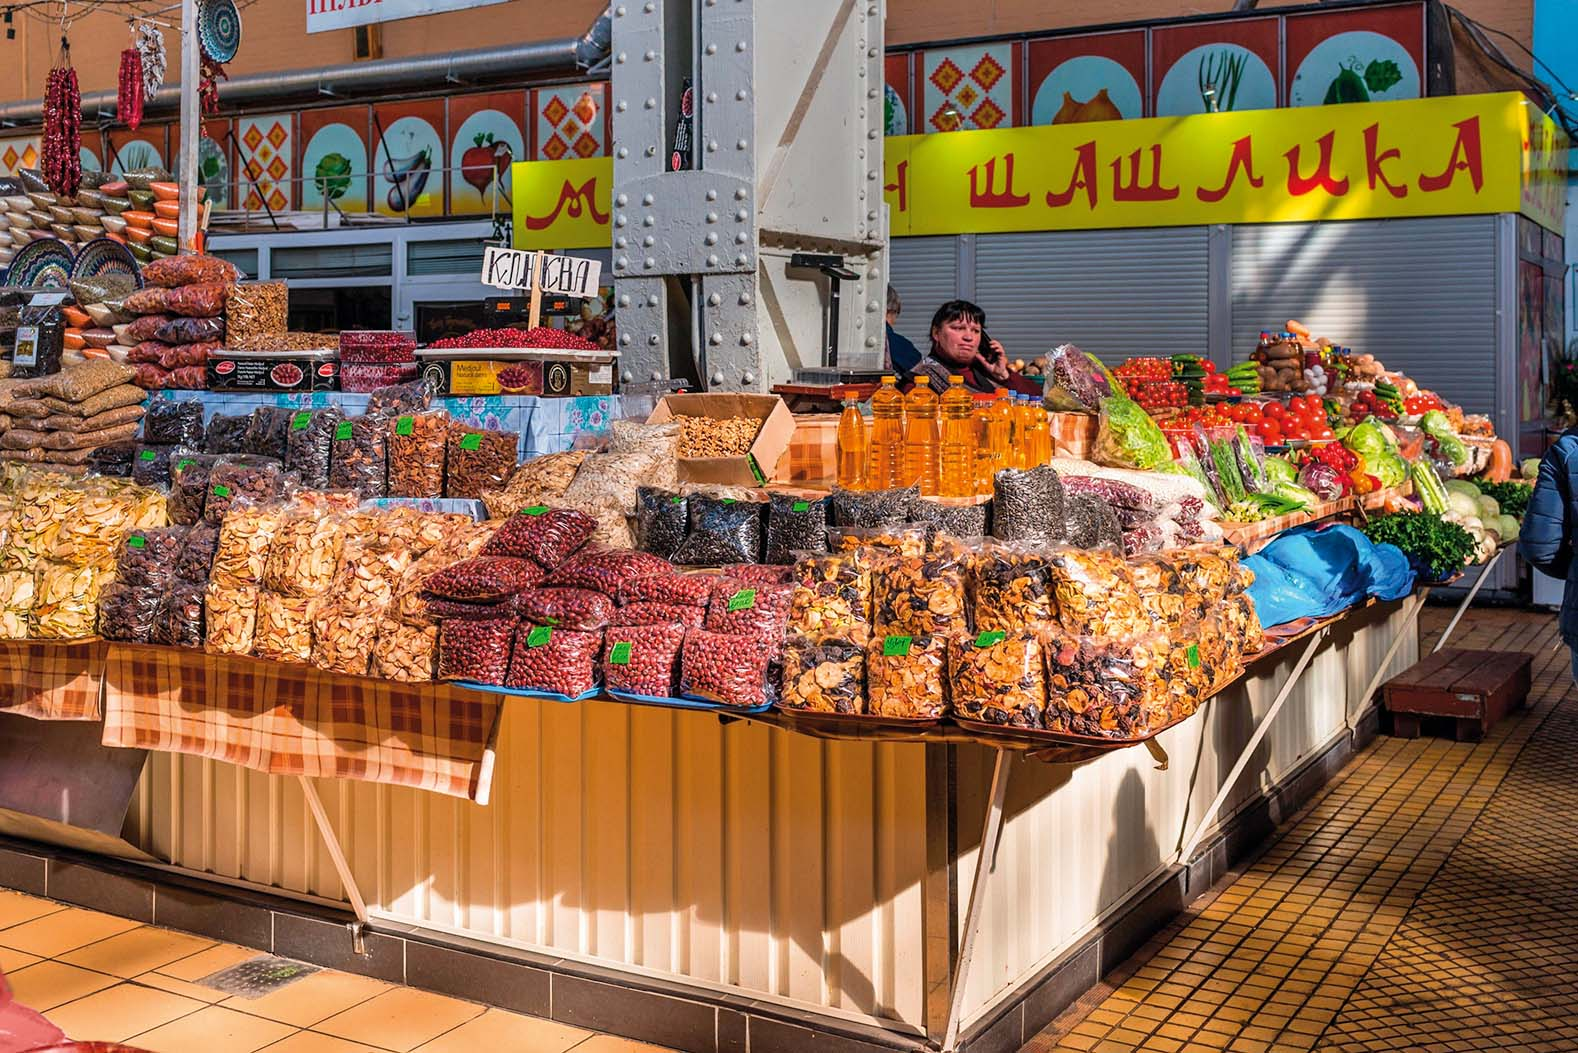 Kyiv, Ukraine - March 29, 2017: Display with dry fruits, seeds, sunflower oil and vegetables at Besarabsky market, one of the iconic markets of Kyiv, Ukraine., Image: 327249748, License: Royalty-free, Restrictions: , Model Release: no, Credit line: Profimedia, Alamy